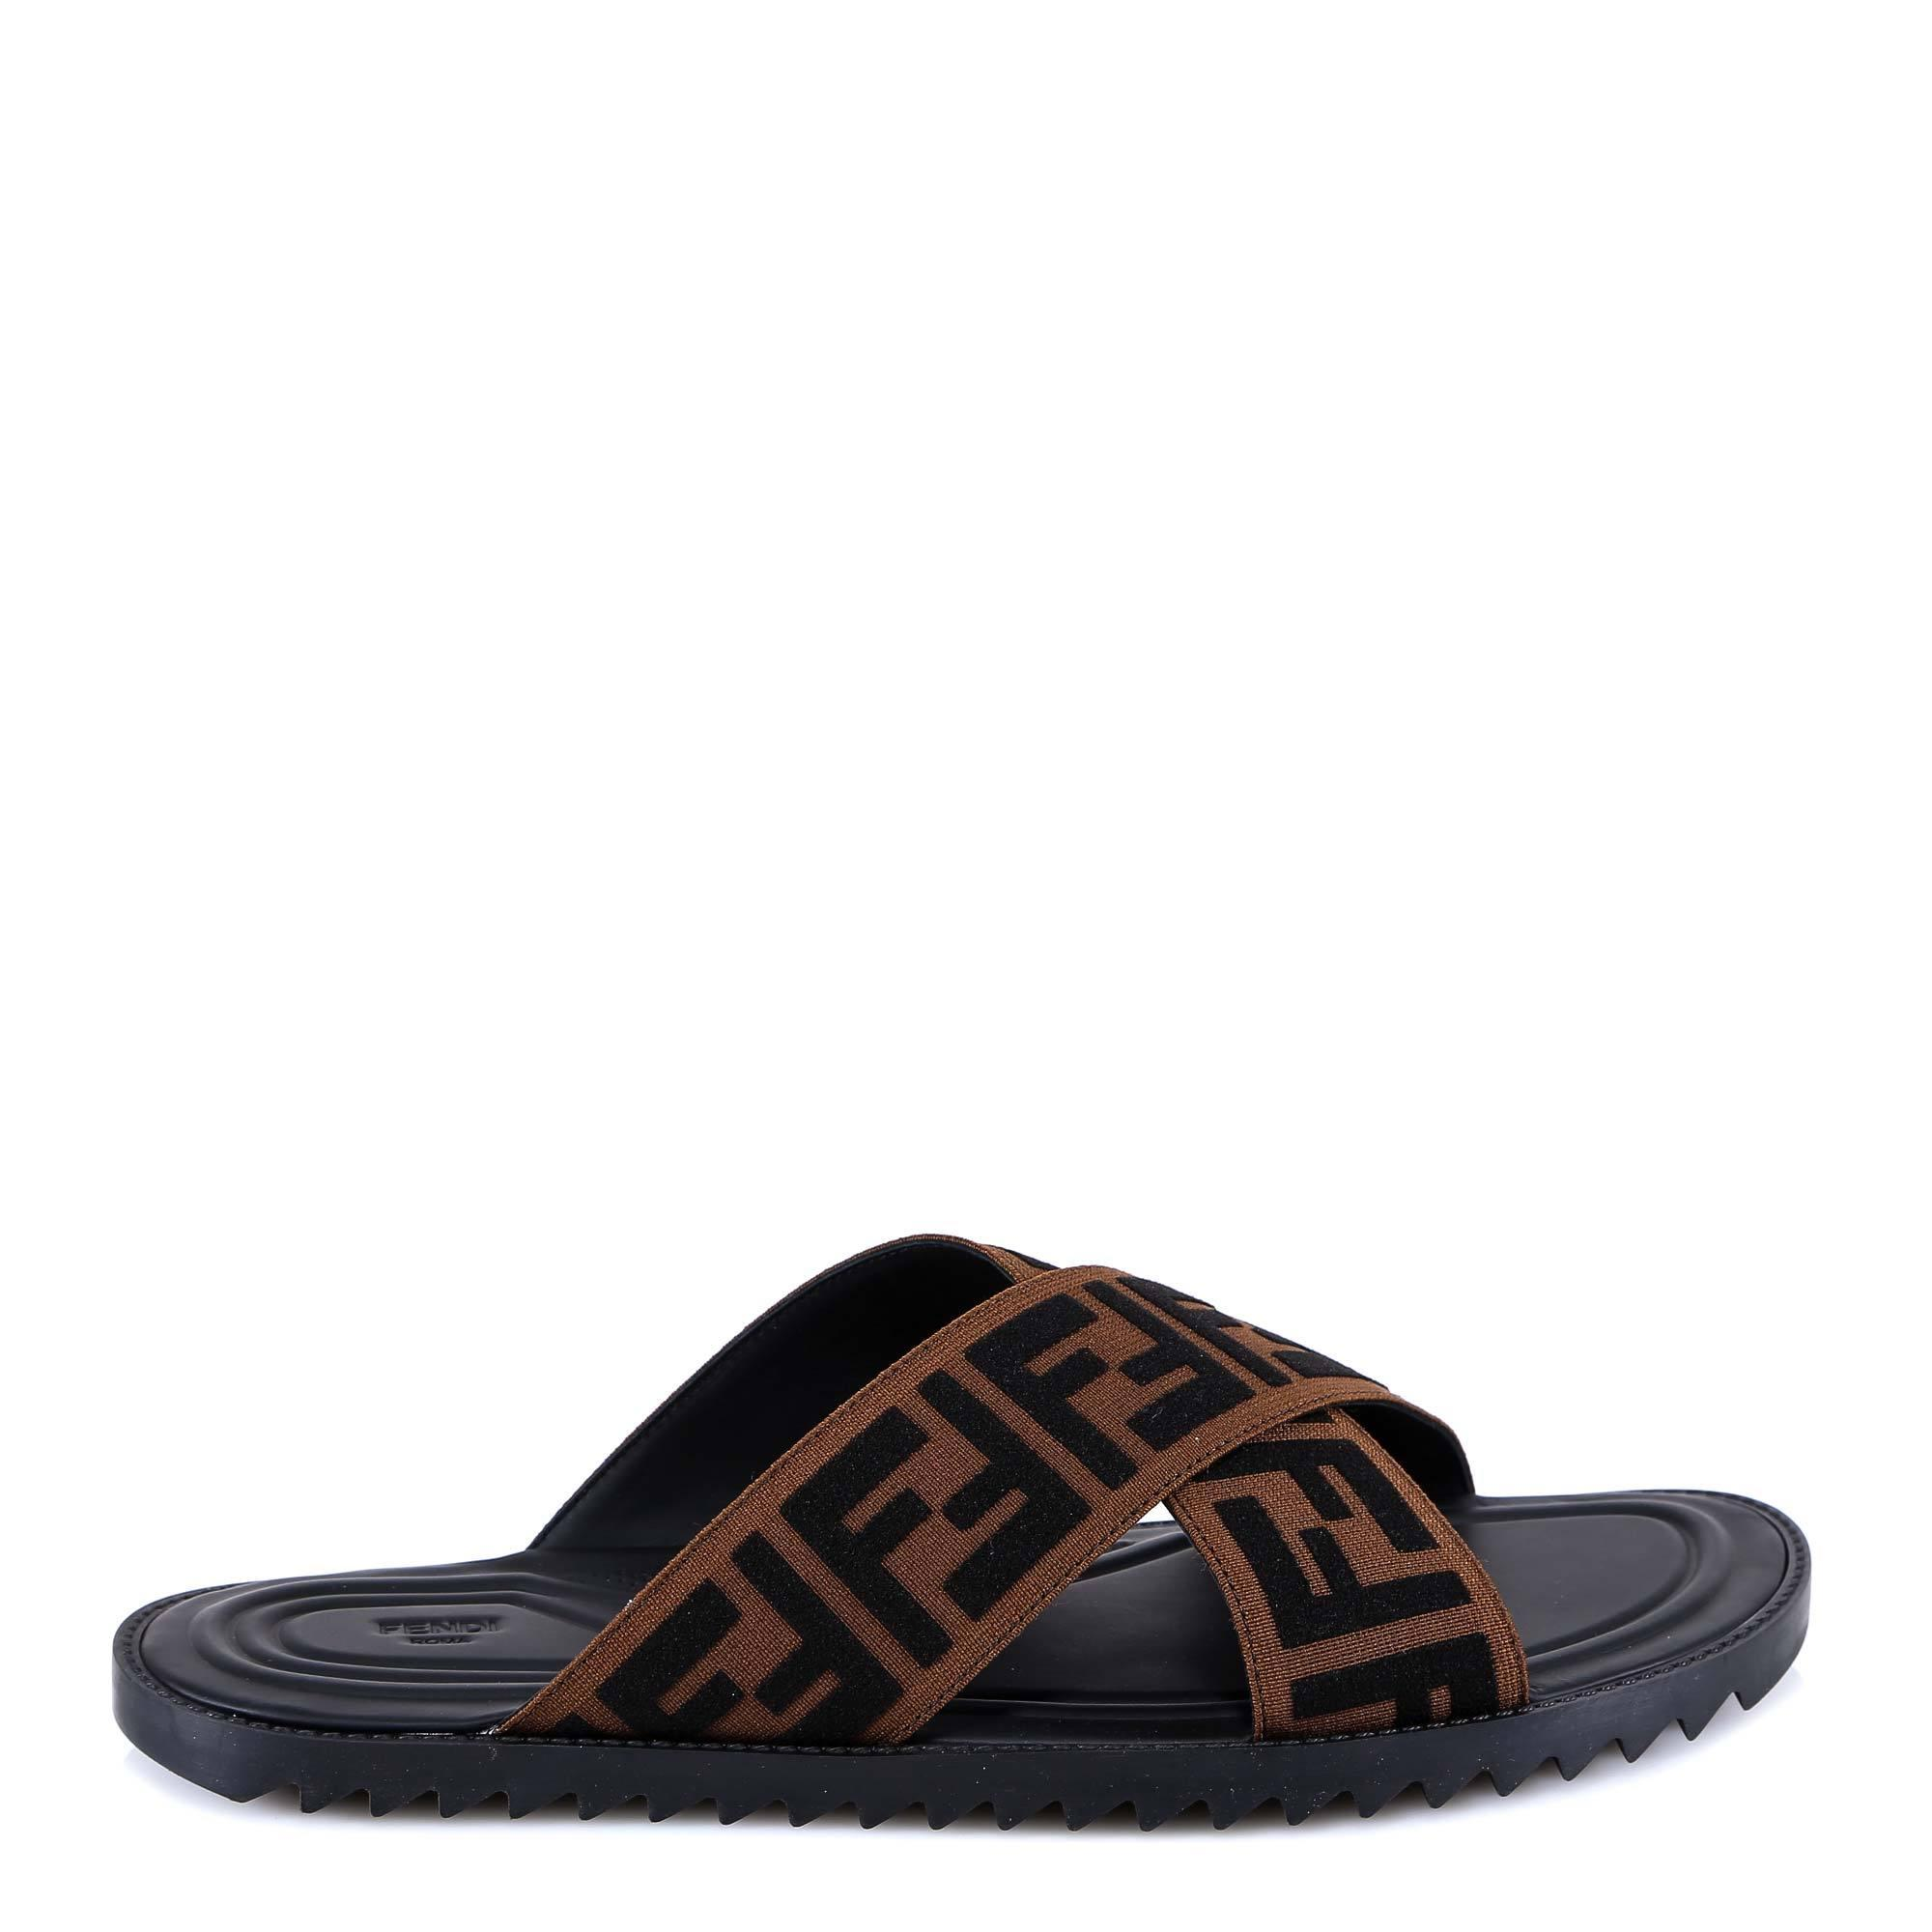 3738dac5ca70 Fendi Men s Ff Band Slide Sandals in Brown for Men - Save 20% - Lyst